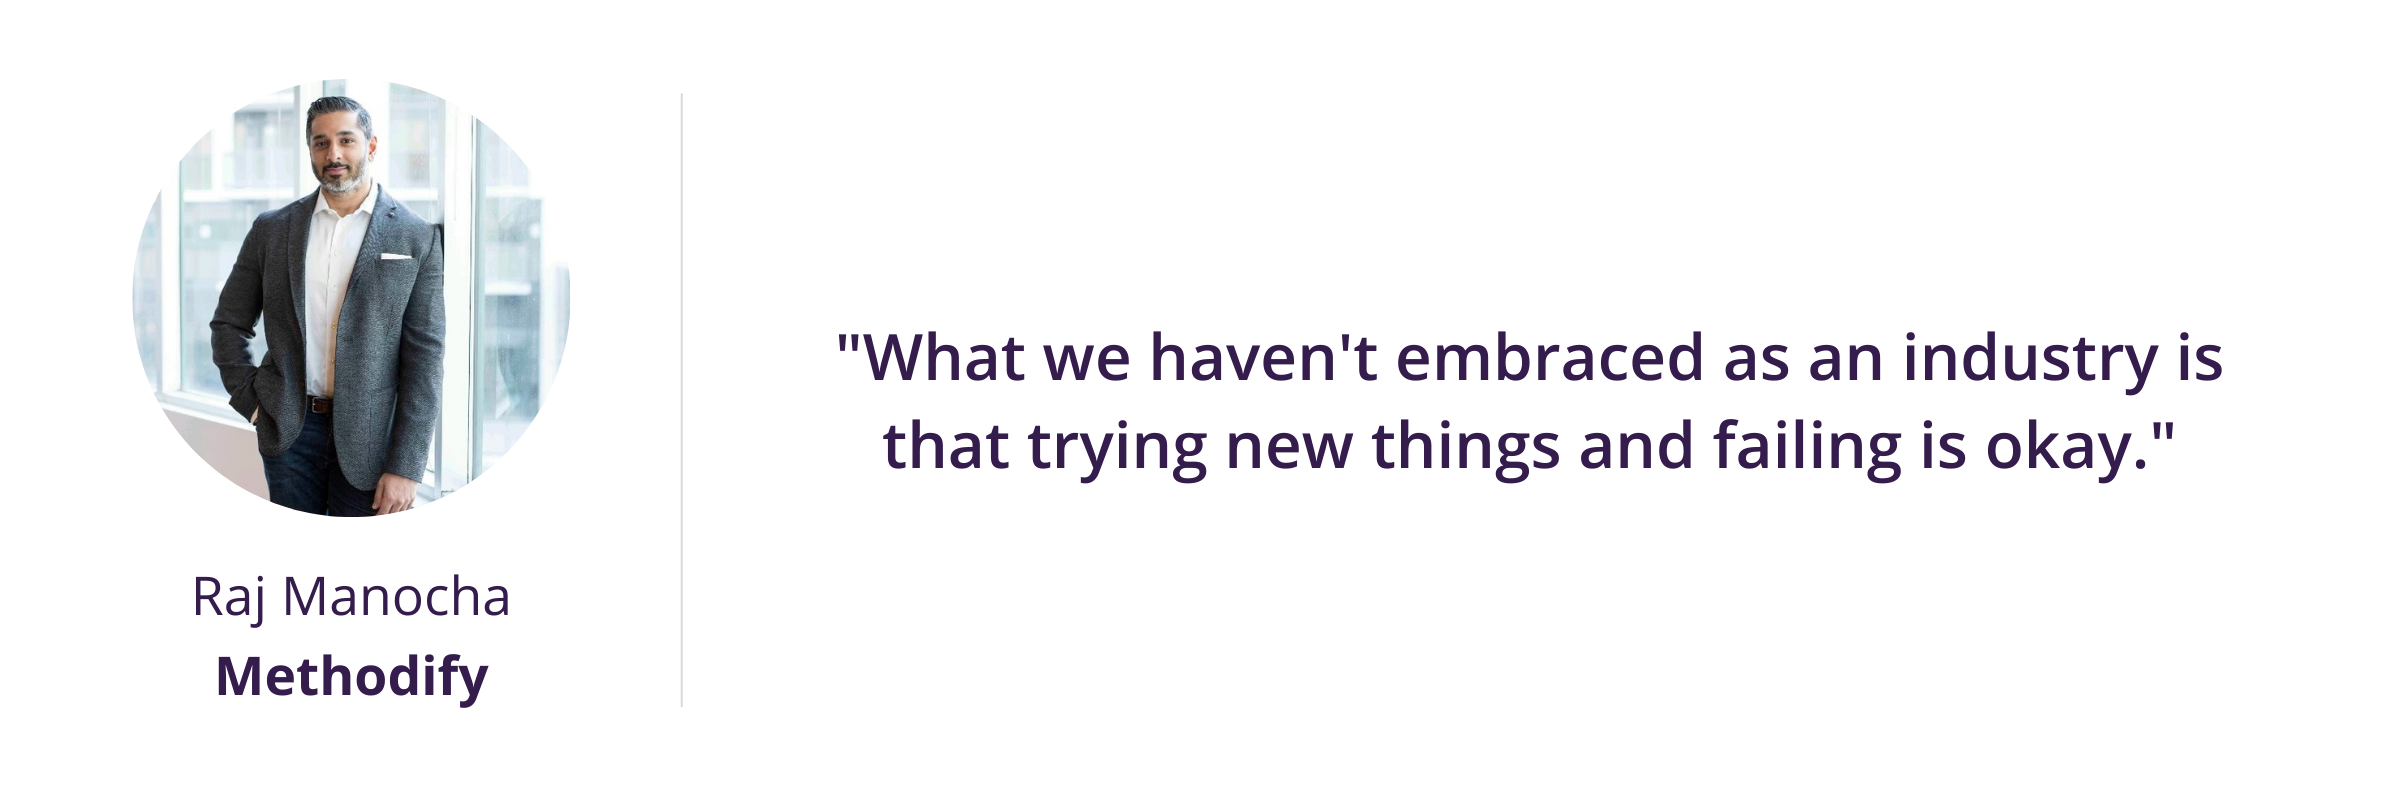 What we haven't embraced as an industry is that trying new things and failing is okay.